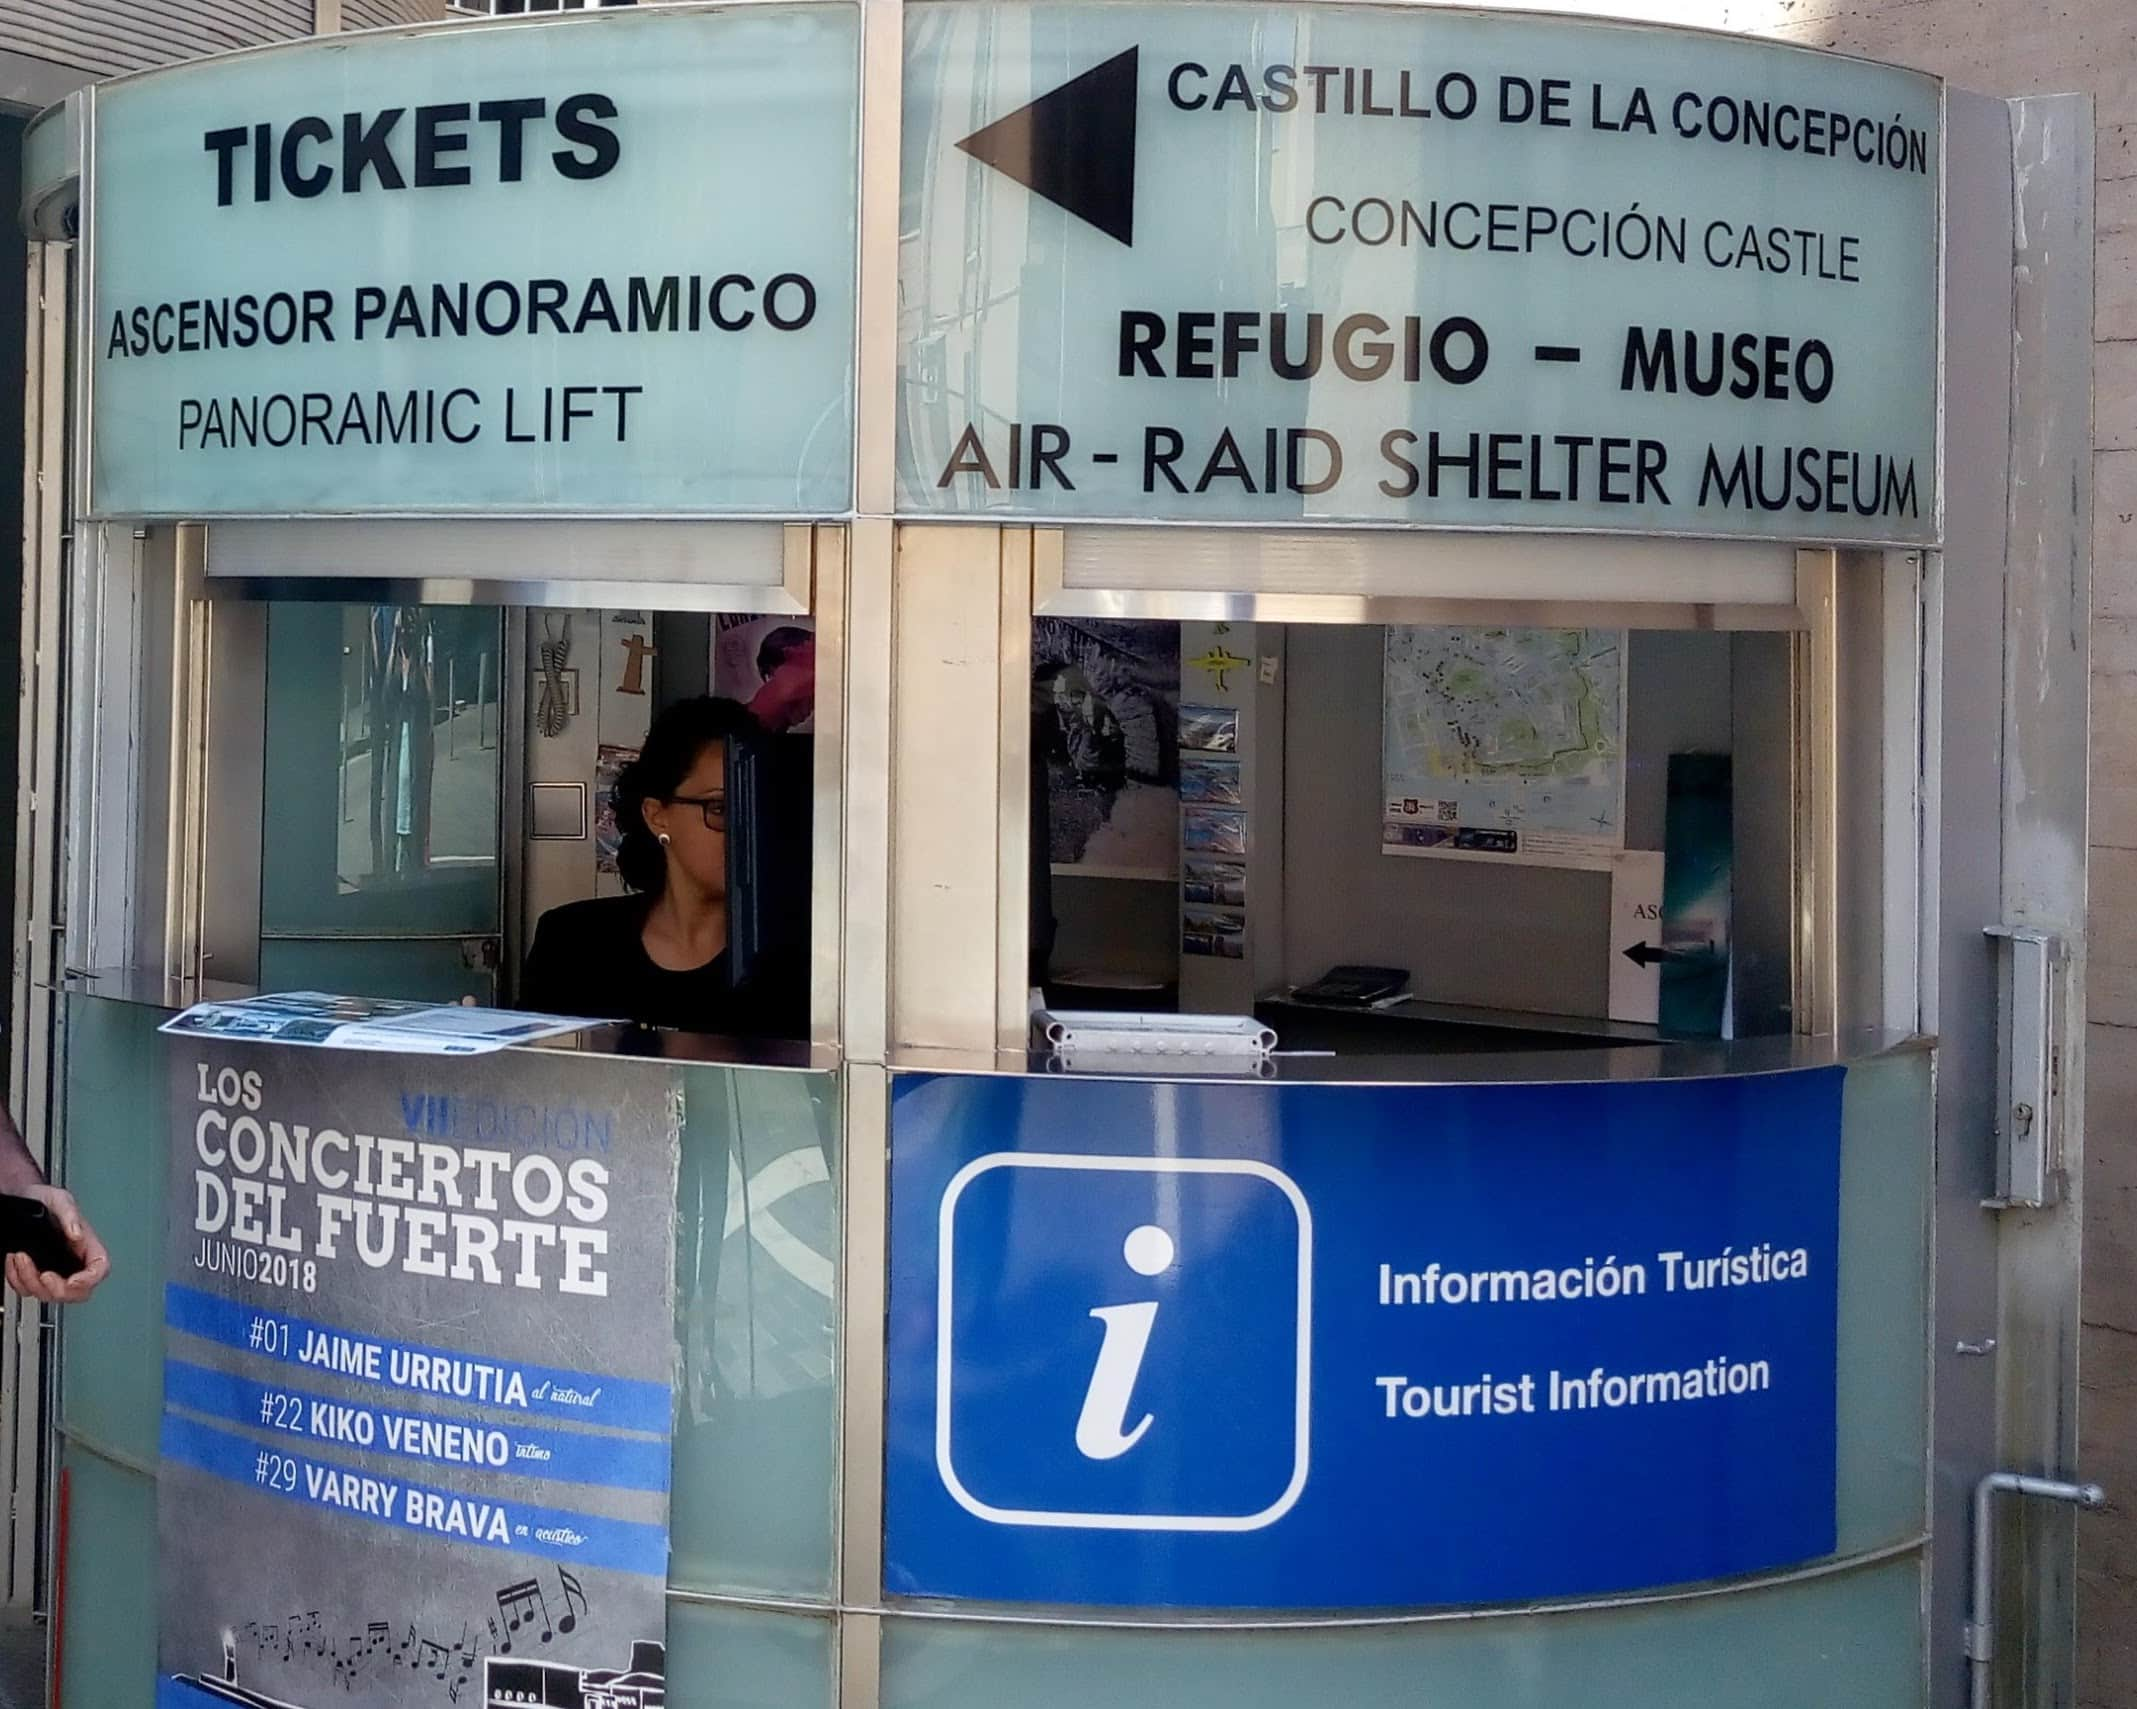 ticket booth for castillo and civil war refugio cartagena spain